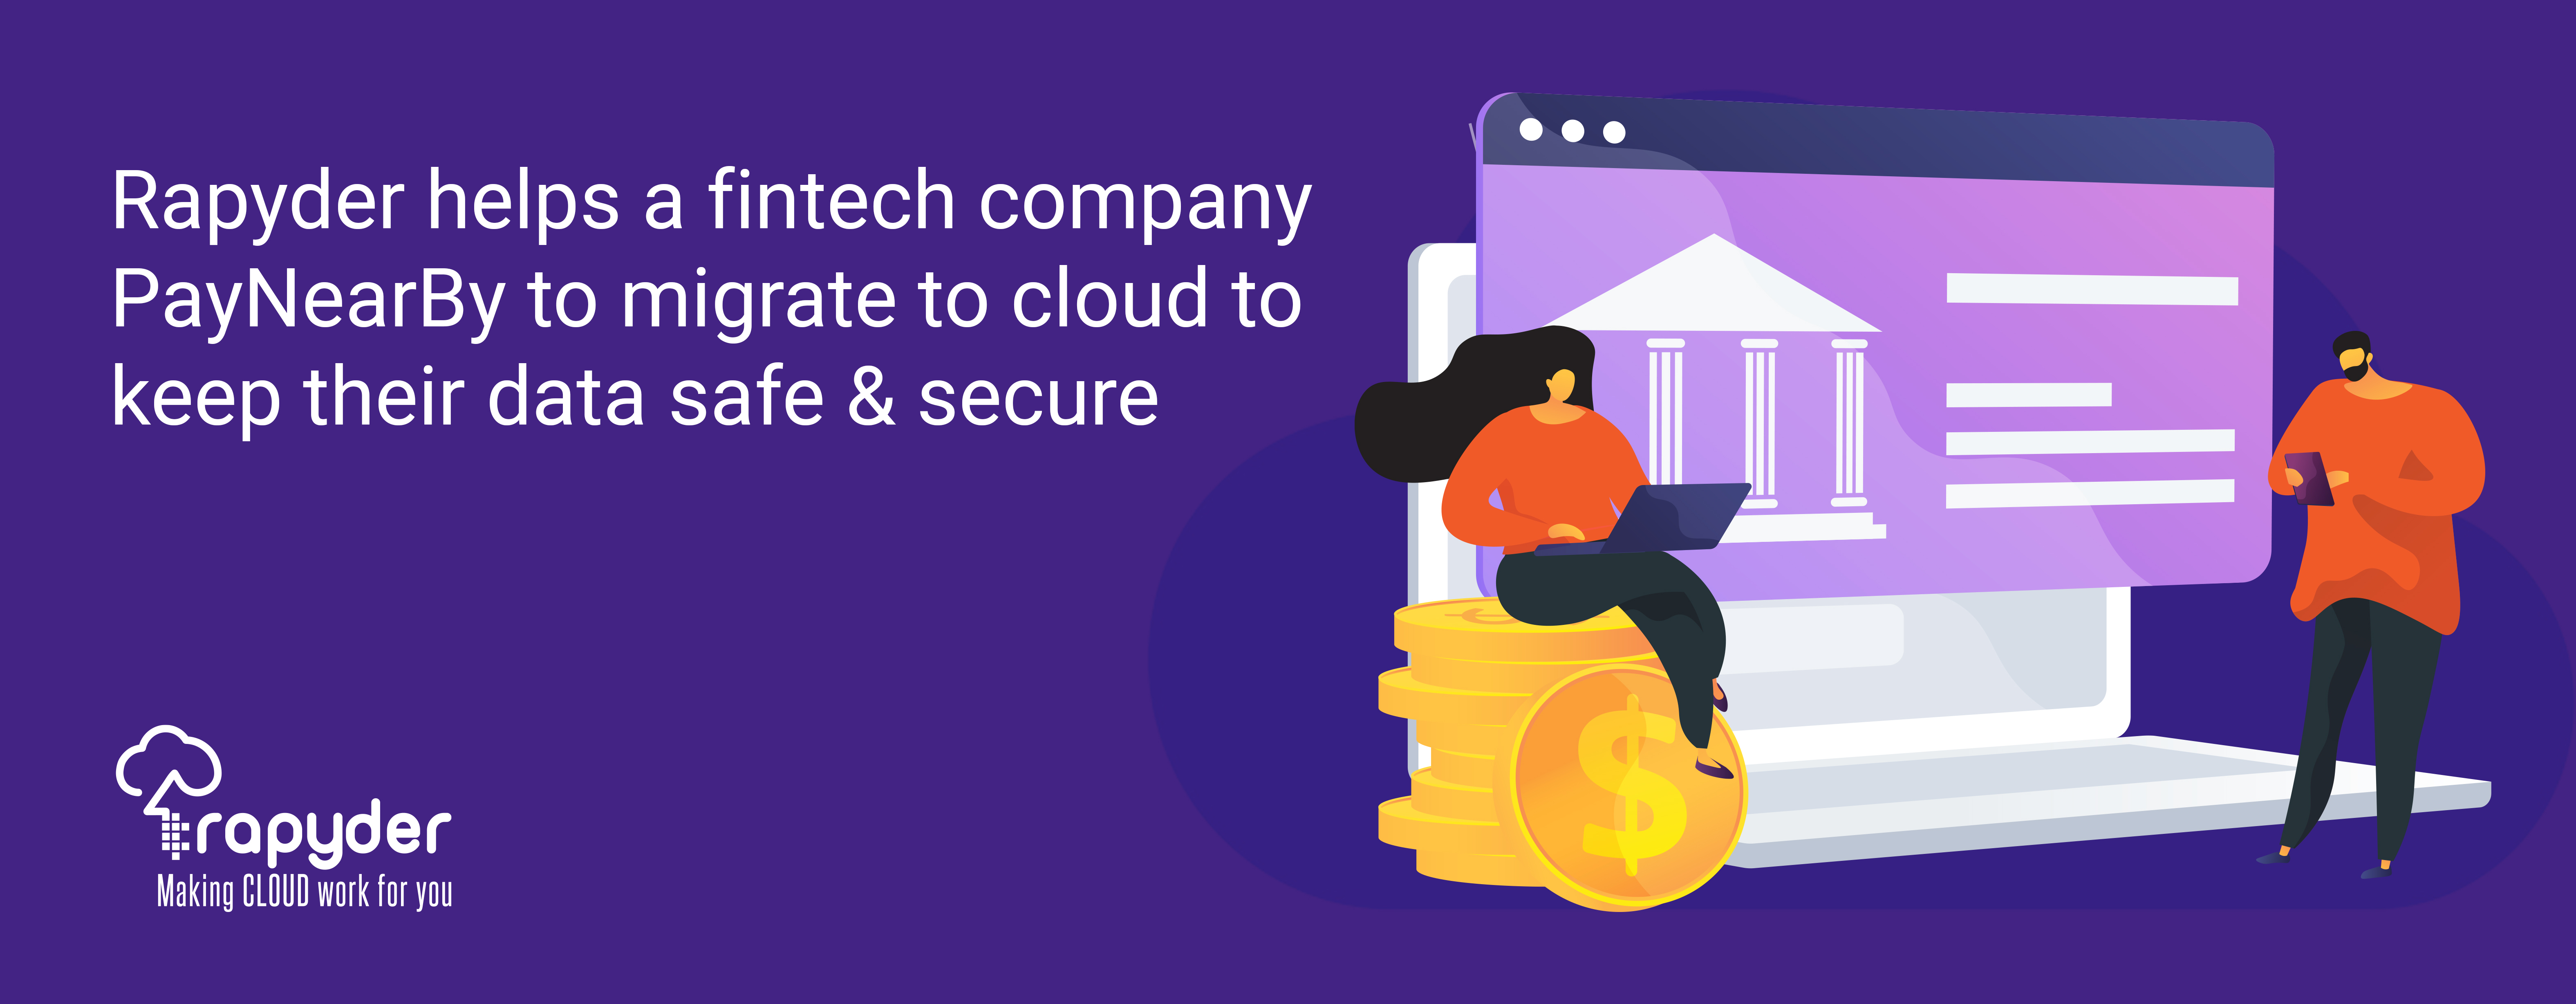 PayNearBy built up a highly secure & reliable solution to keep their data safe & secure